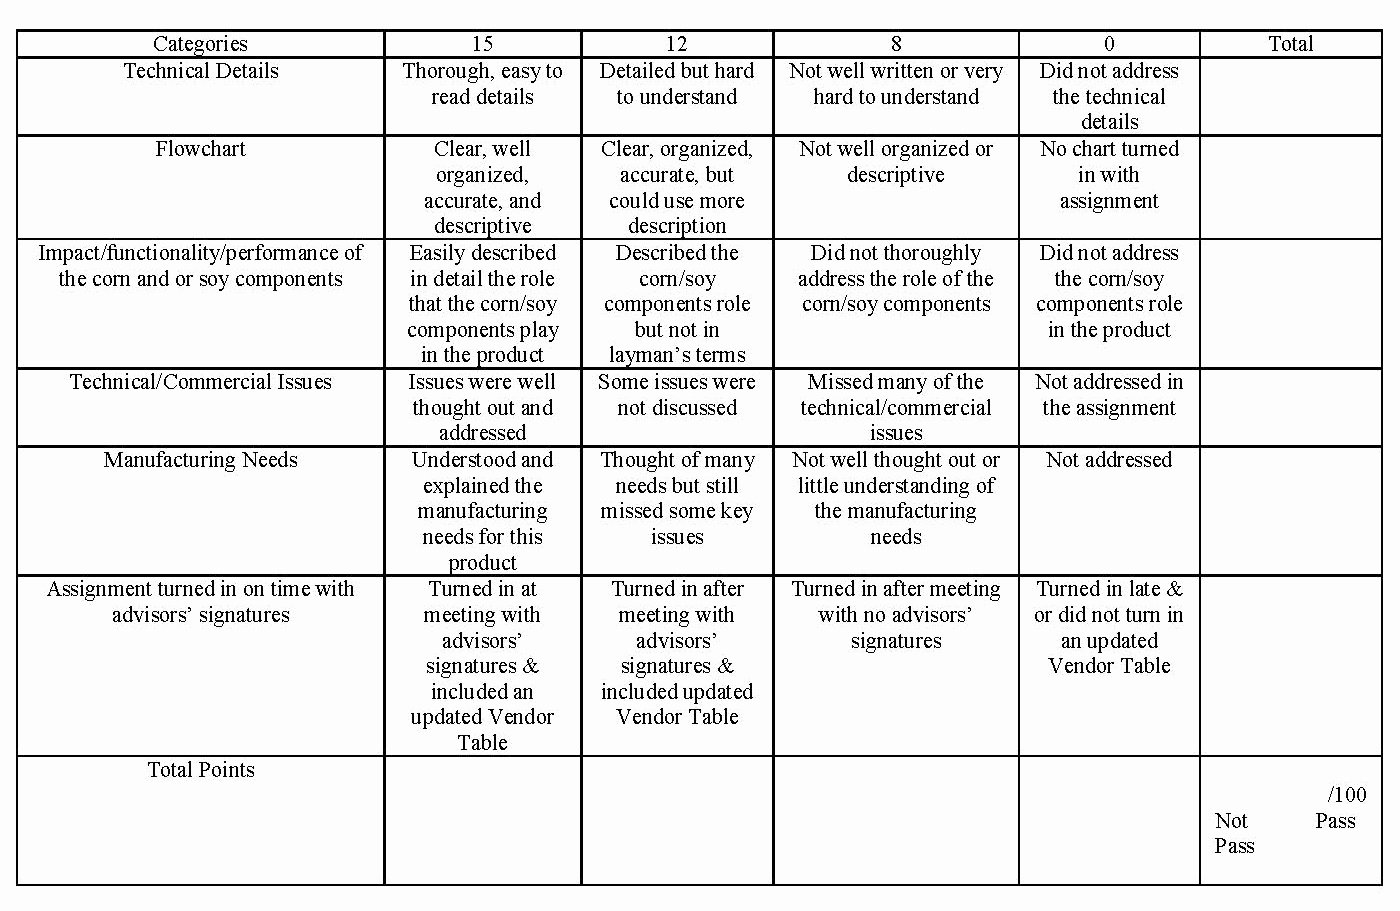 Dental School Personal Statement Word Limit Lovely original & Literature Review assignment Rubric